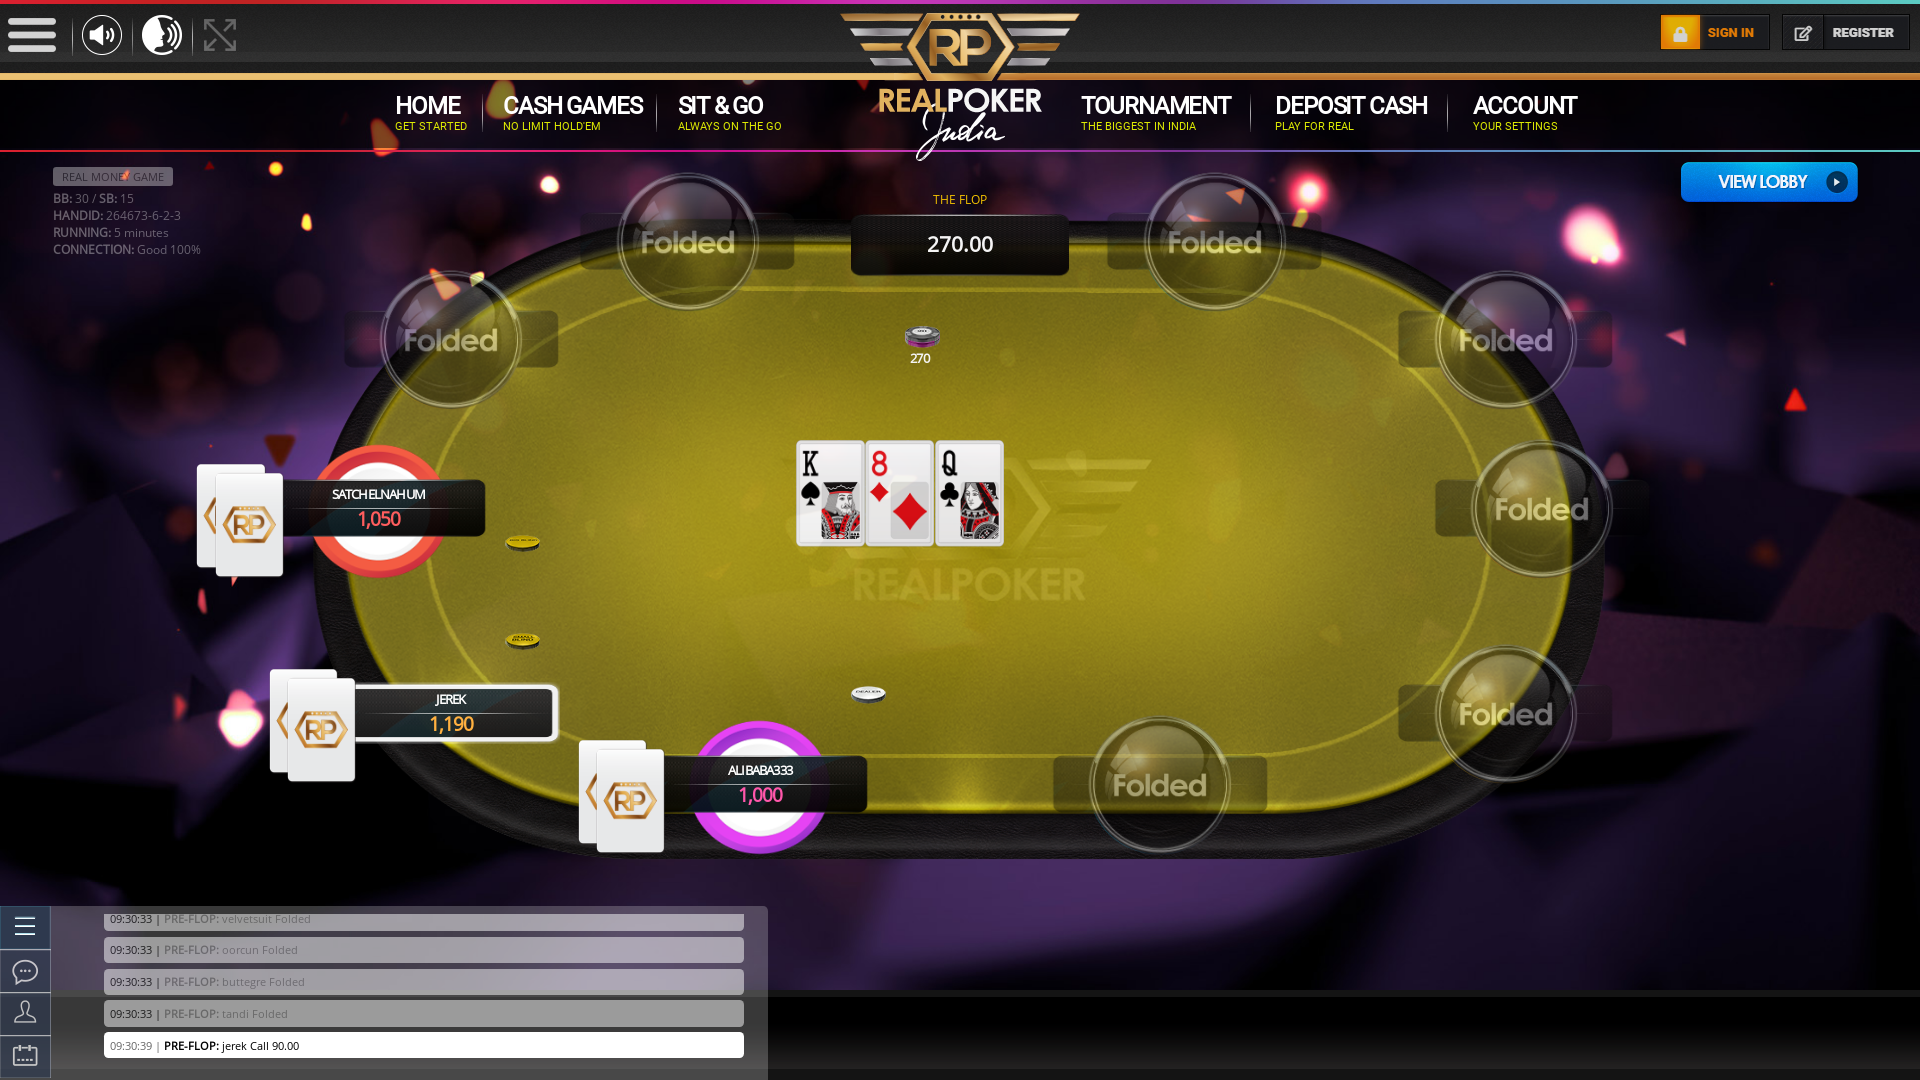 Real Indian poker on a 10 player table in the 5th minute of the game